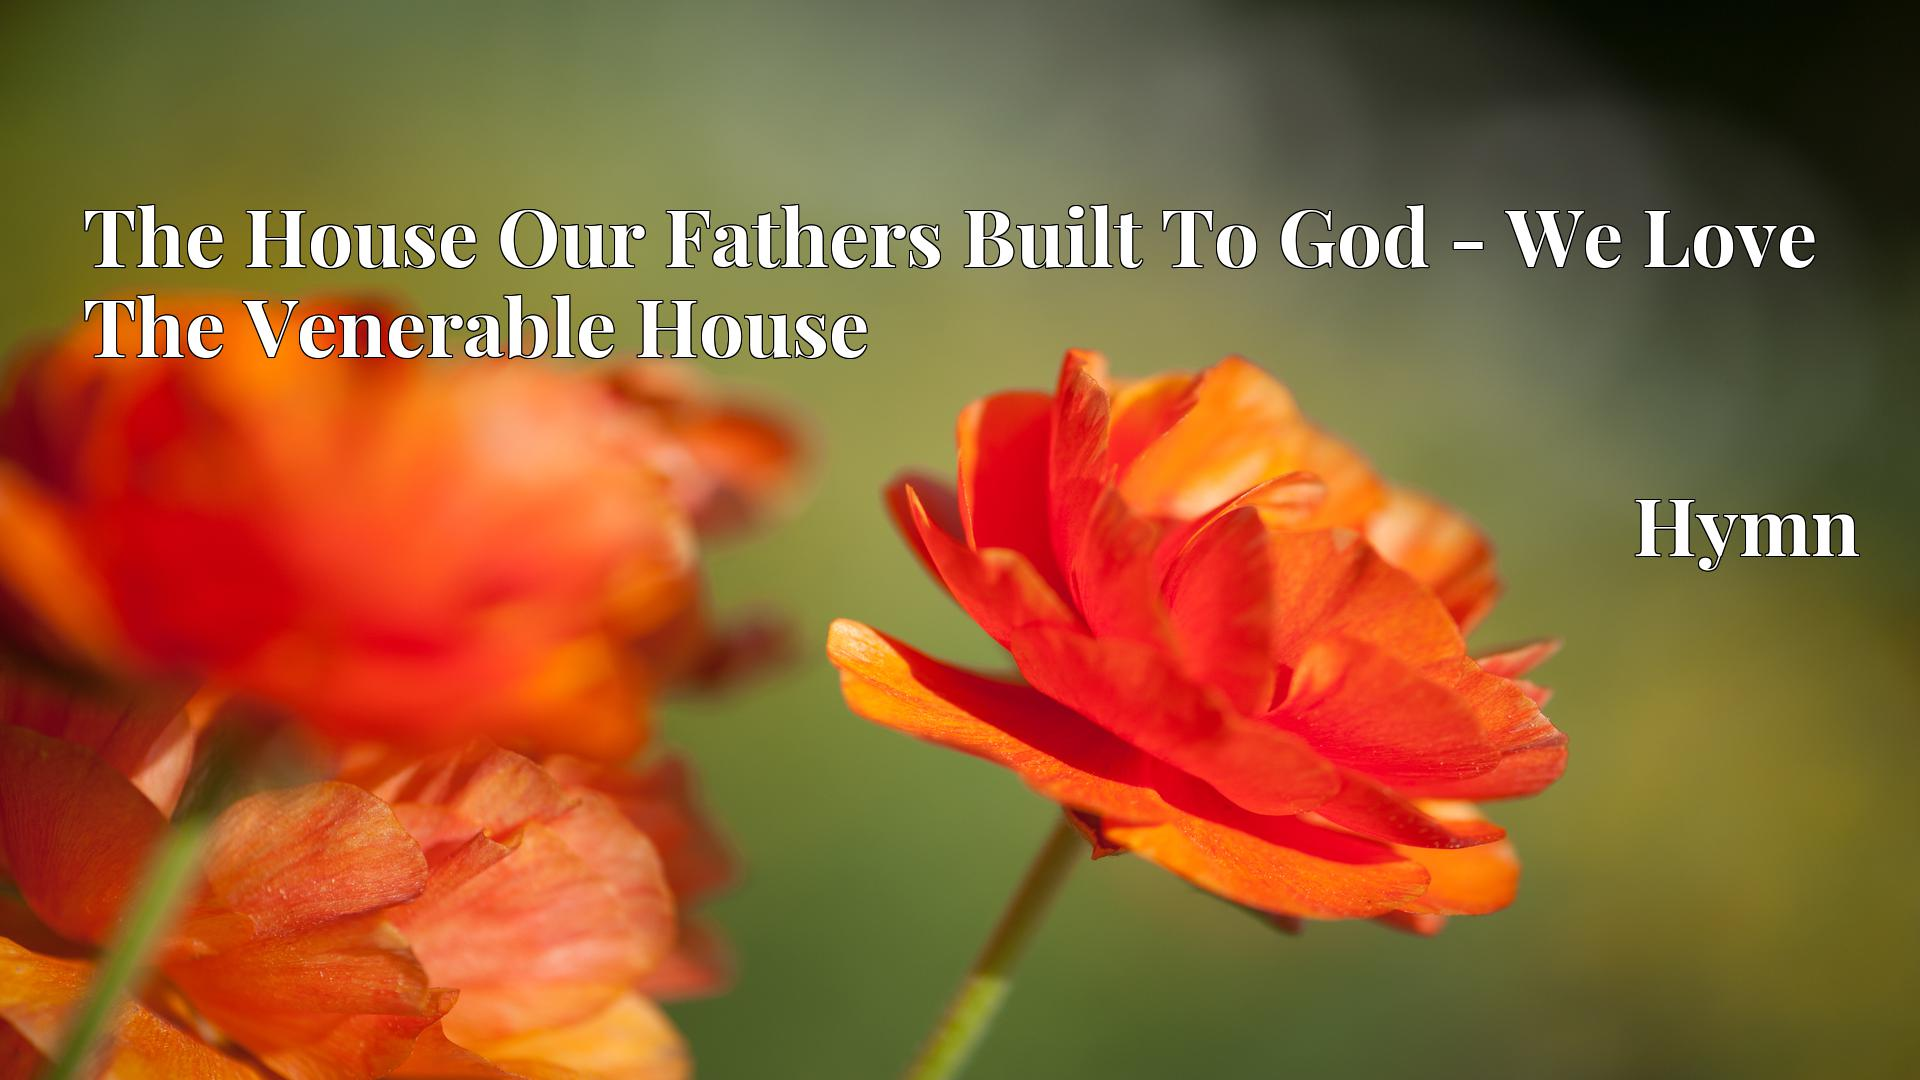 The House Our Fathers Built To God - We Love The Venerable House - Hymn